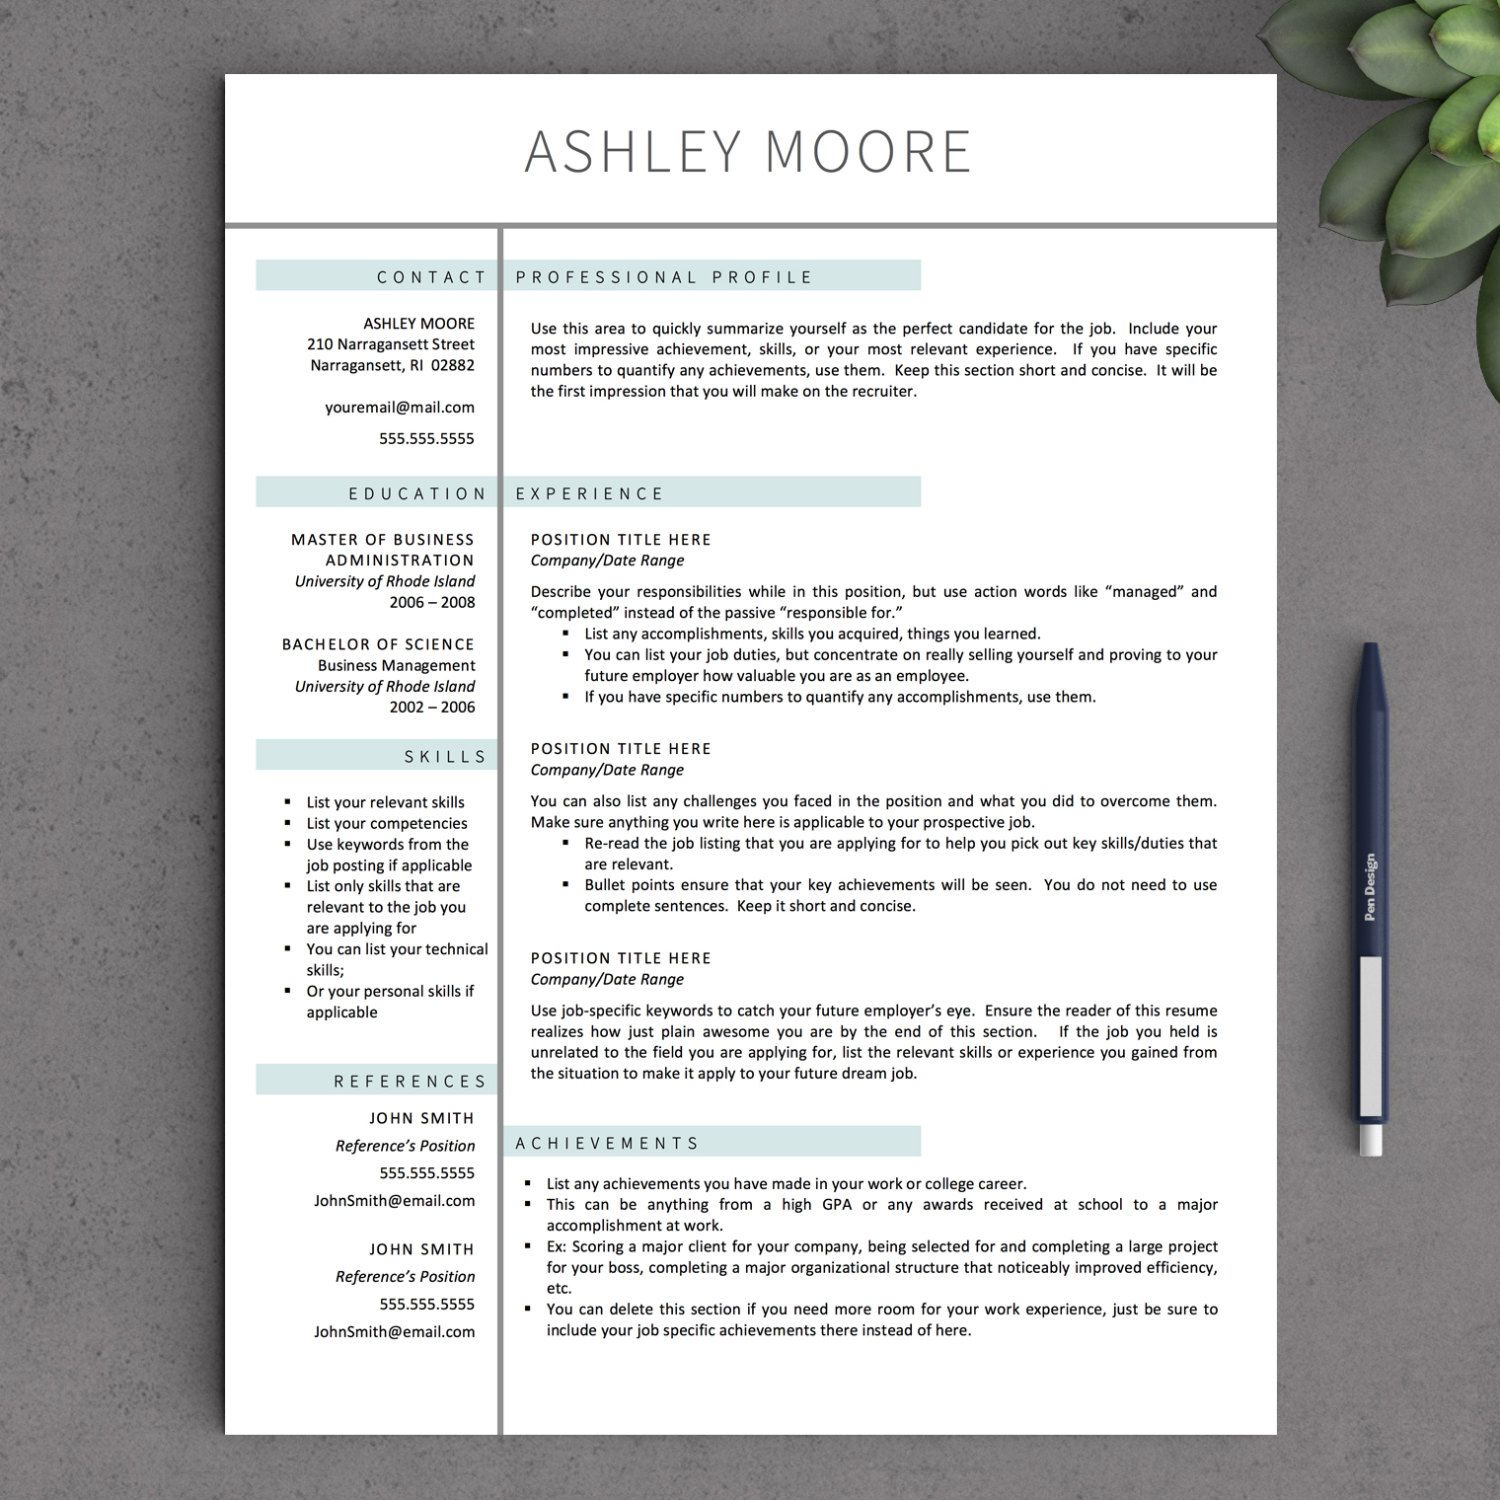 apple pages resume template download apple pages resume template download apple - Resume Template Pages Mac